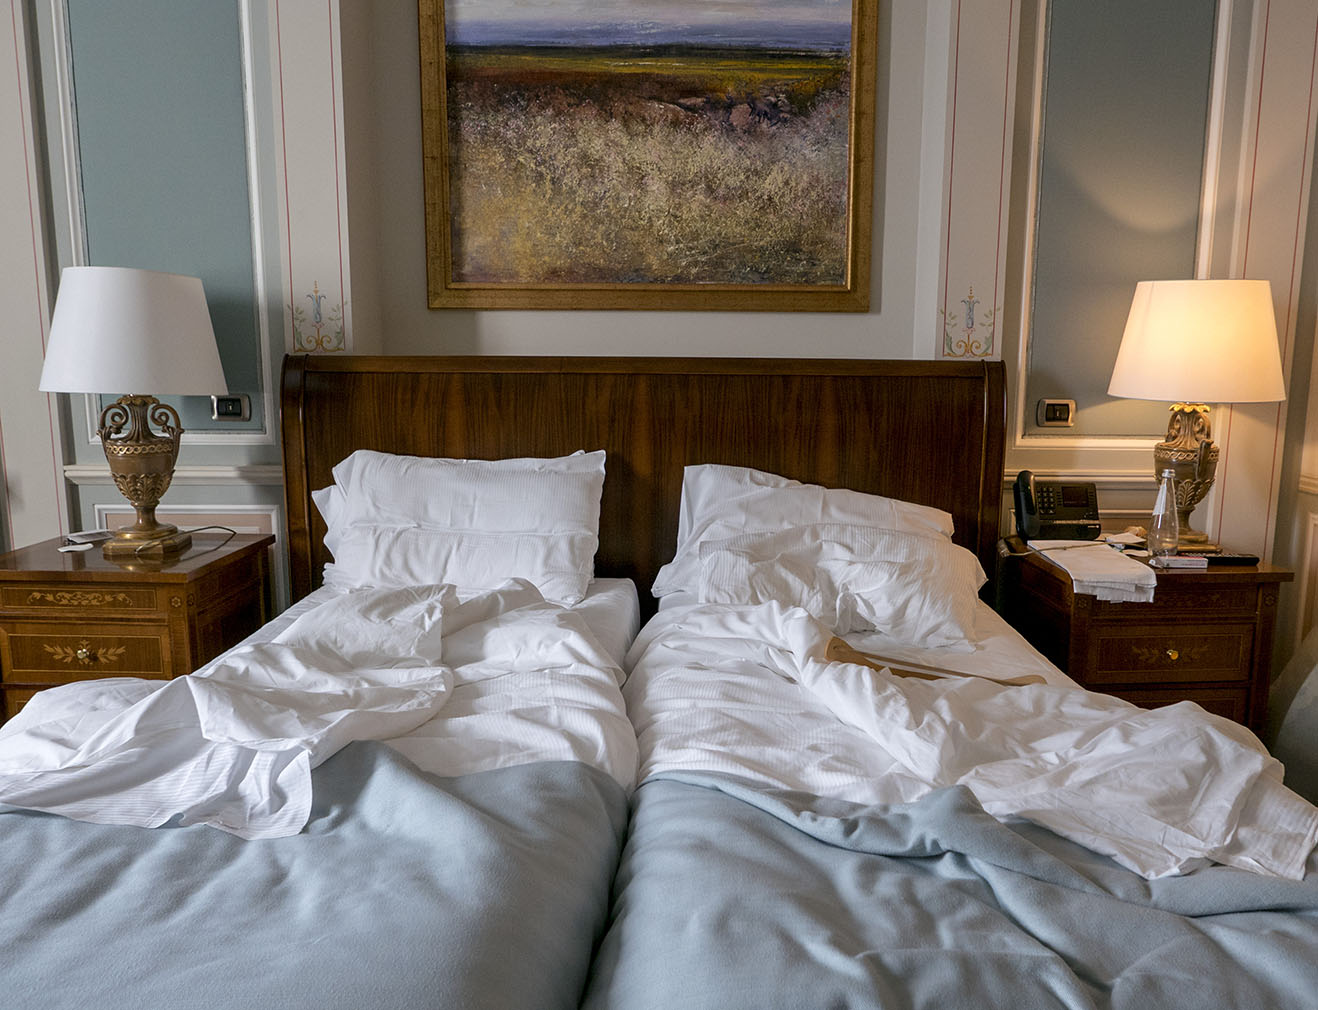 Giulia Dini's photo essay 'Left Behind' featuring empty hotel rooms